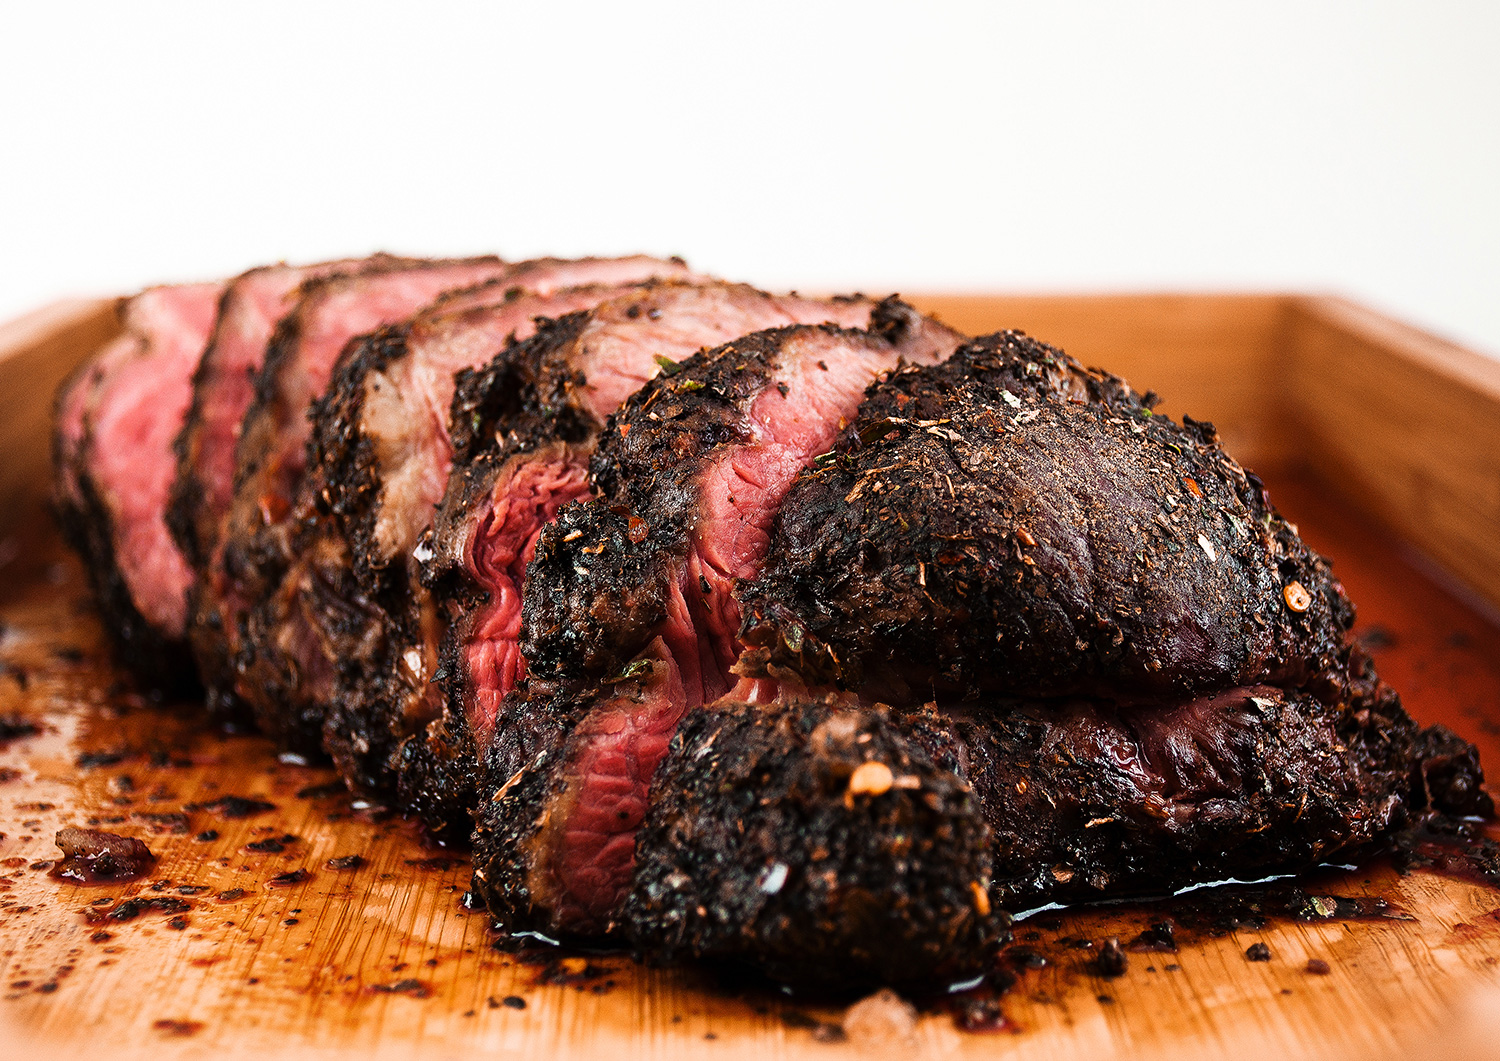 How long do you cook sirloin tip steak in the oven